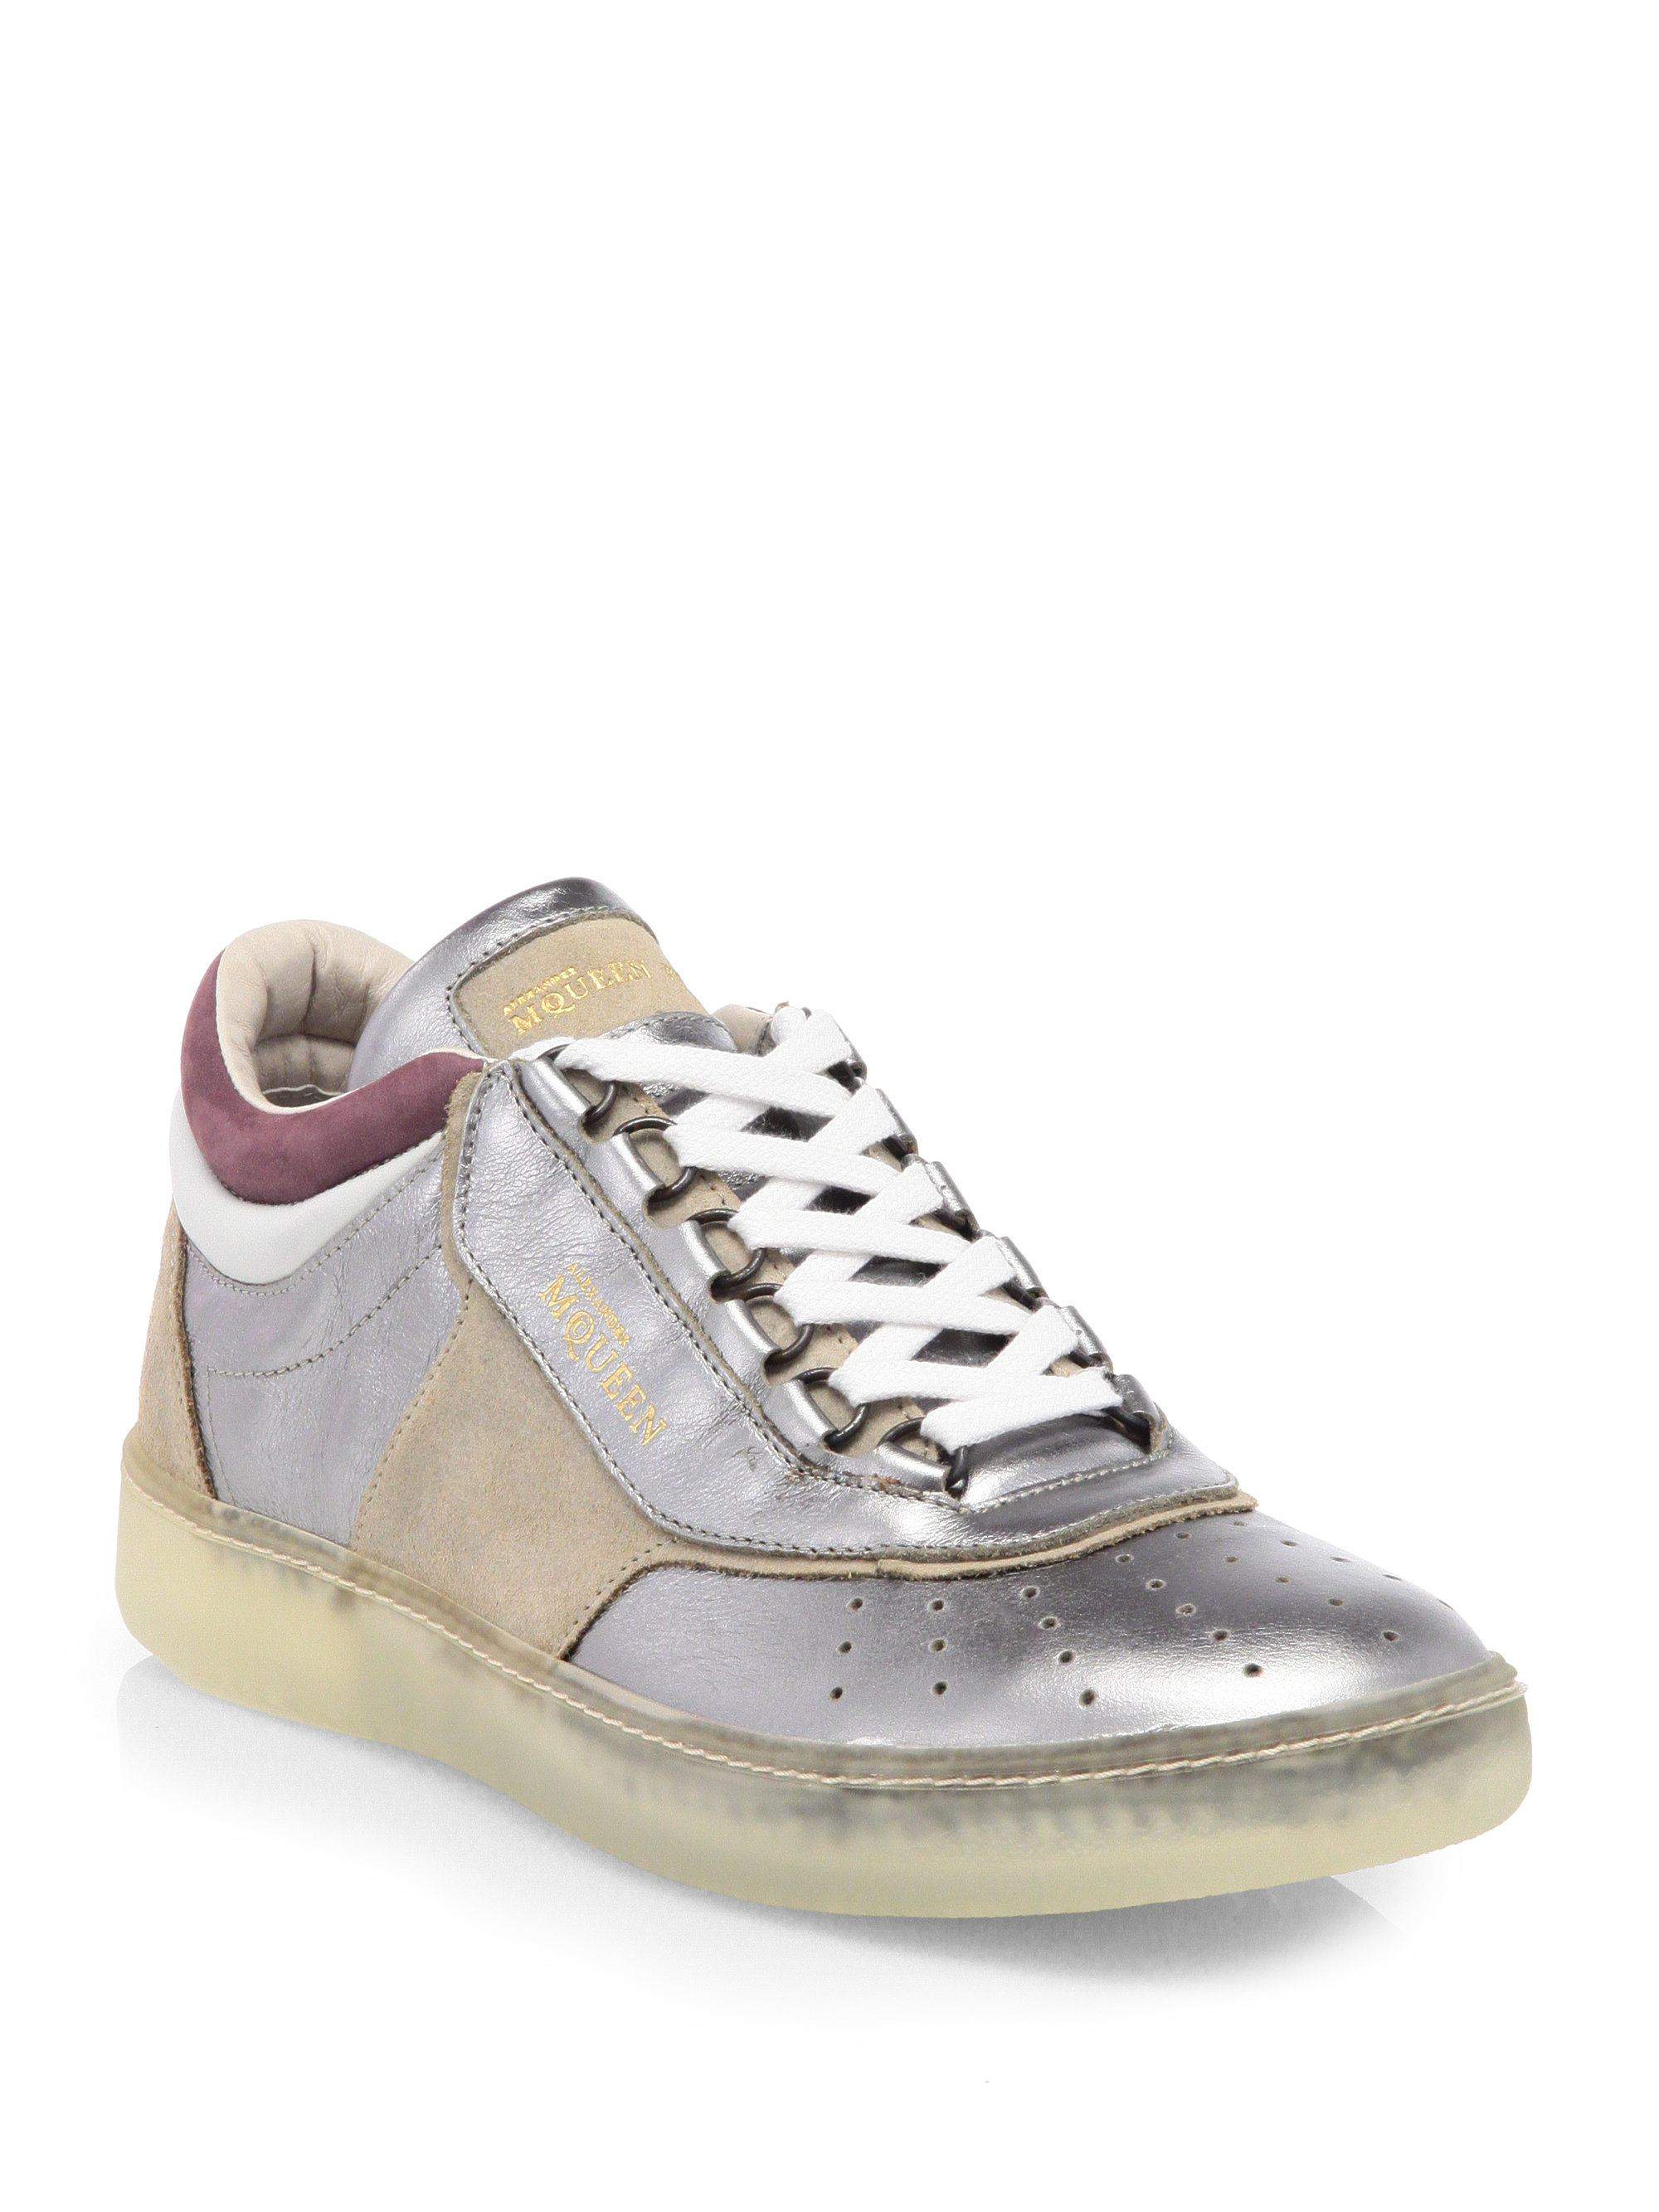 Lyst - Alexander McQueen X Puma Joust Metallic Leather Suede Laceup ... 1cb5e1a7c